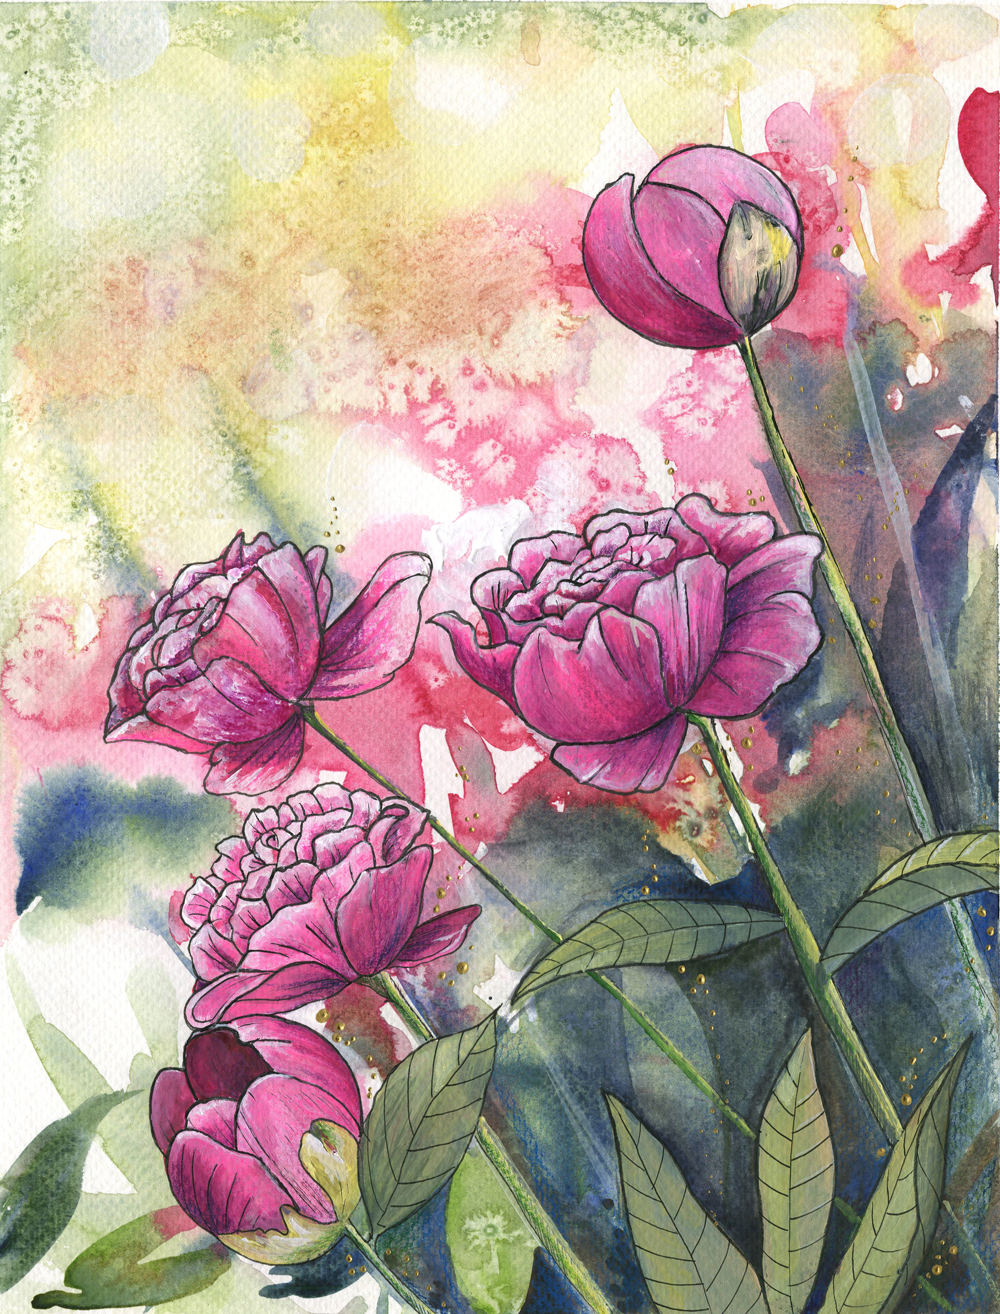 ORIGINAL WATERCOLOR, ACRYLIC AND PEN PAINTING 11X14 Inches, Peonies: $400